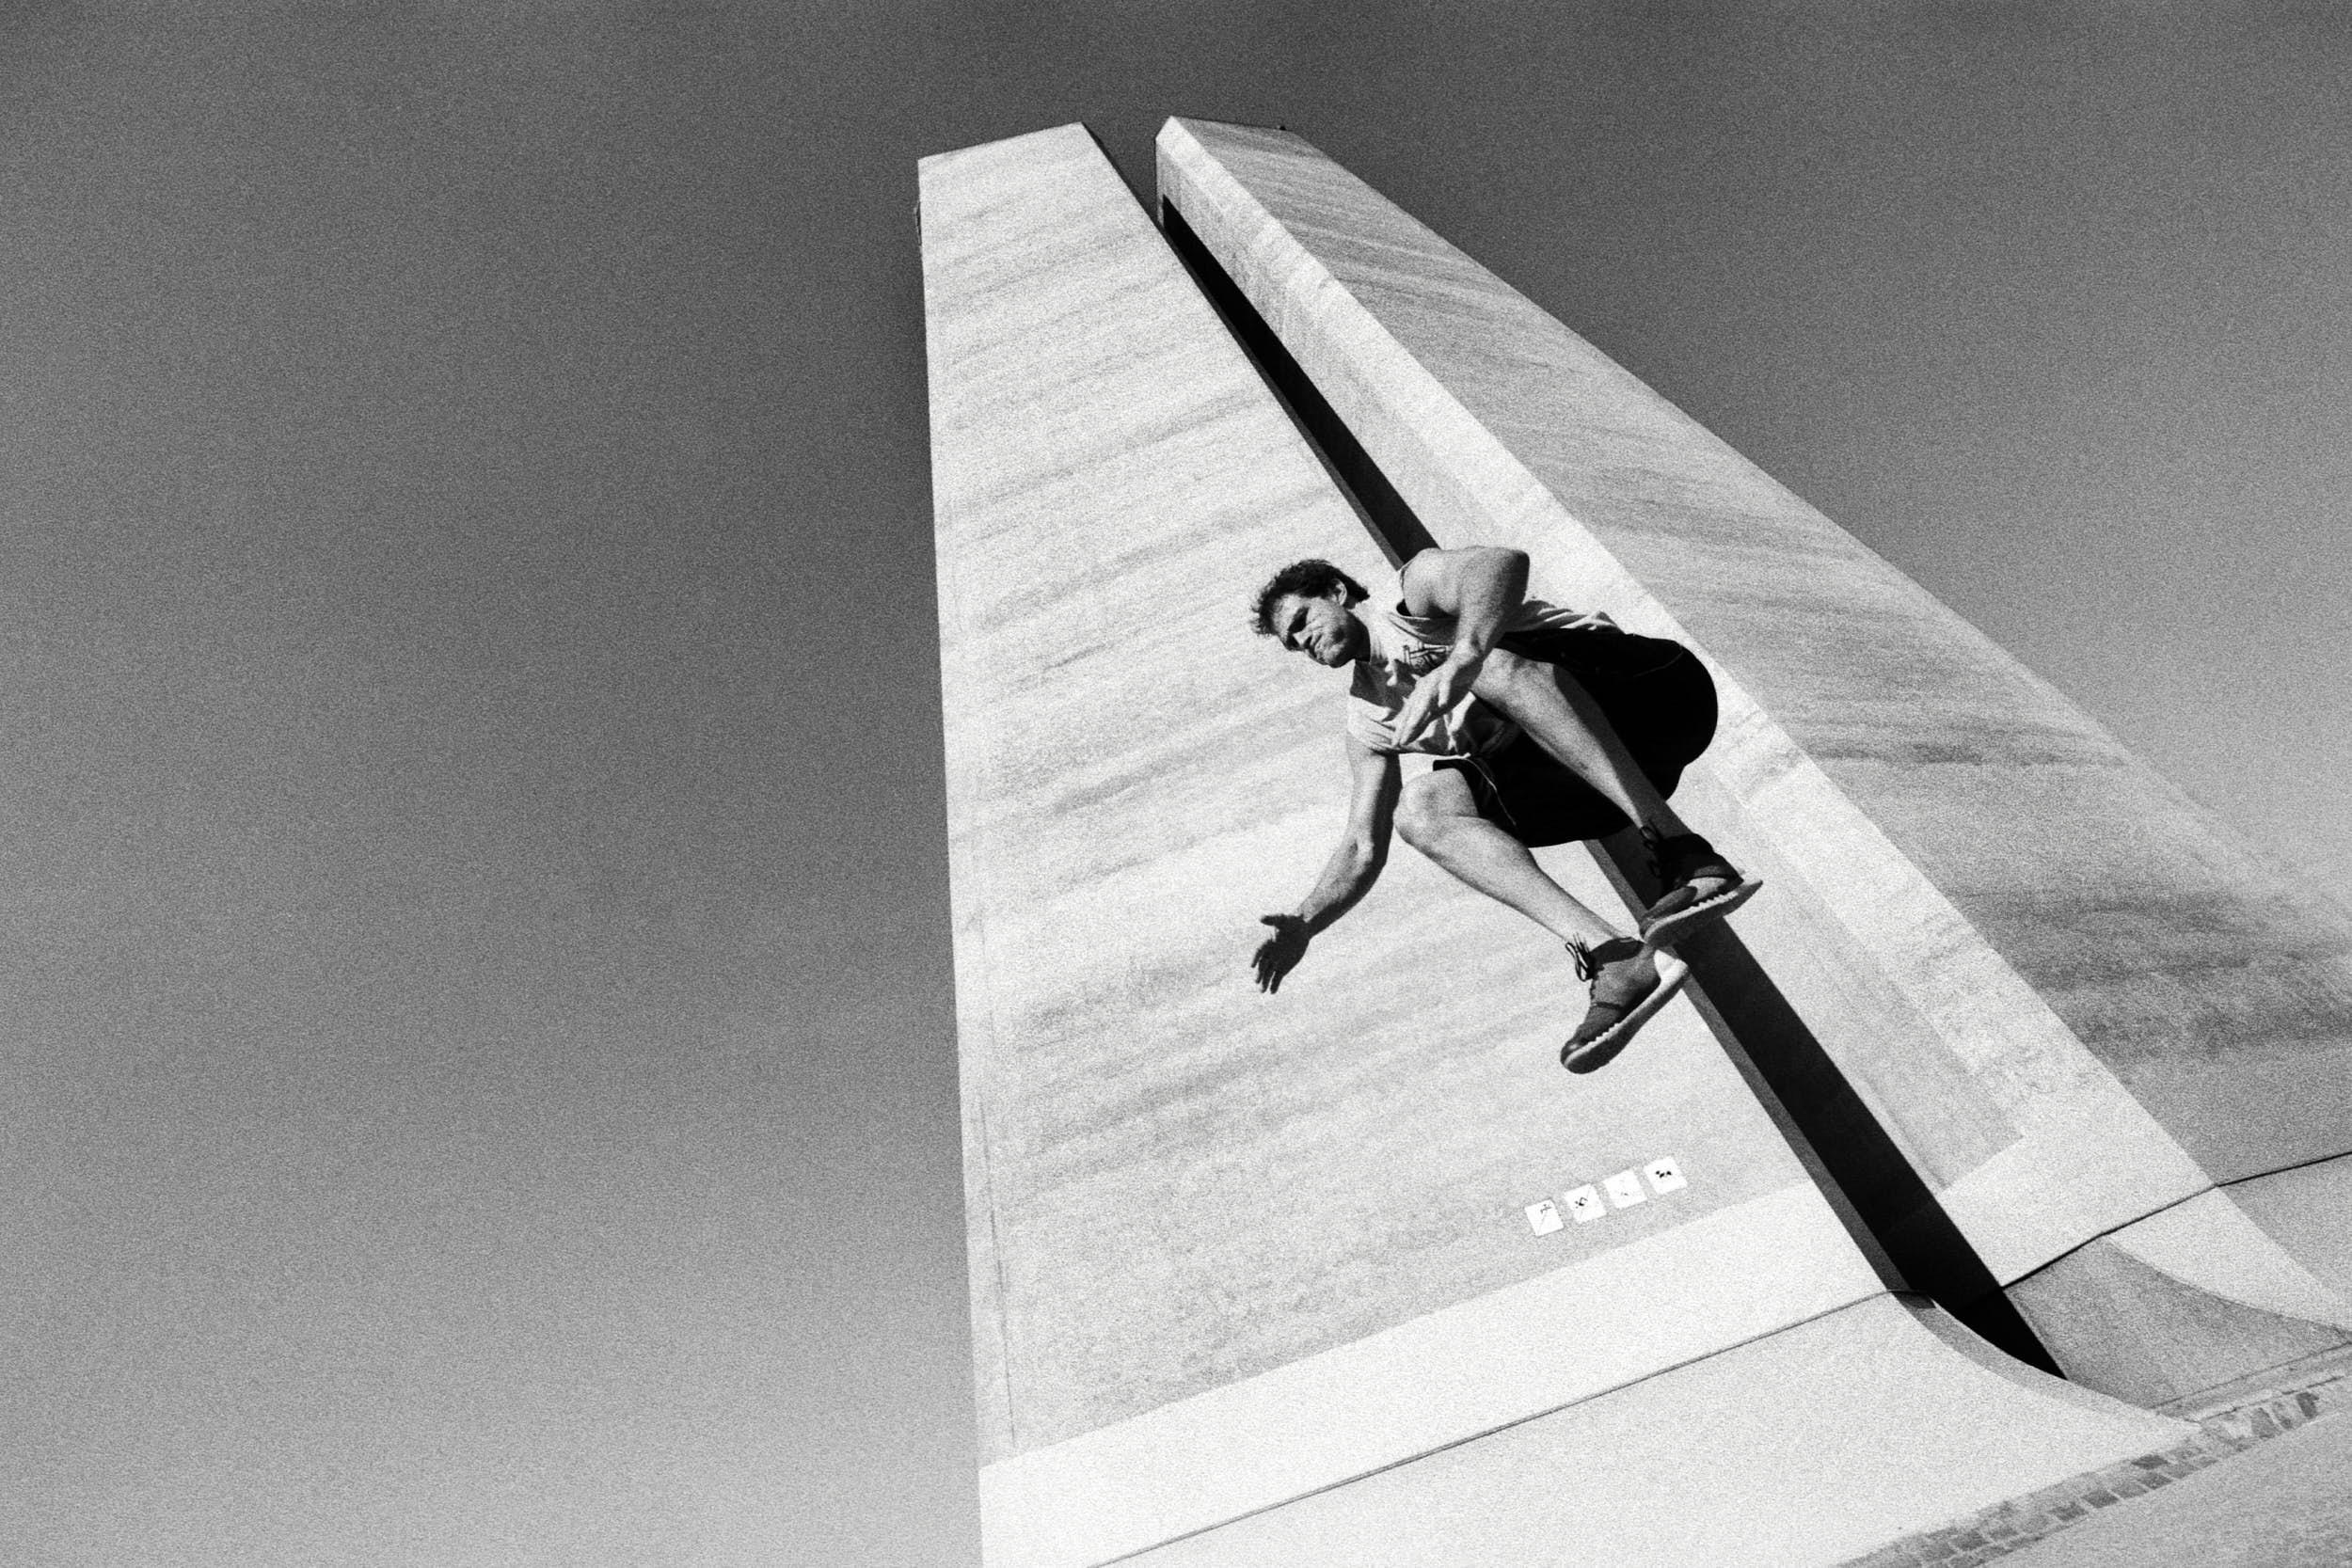 Fitness advertising photography: athlete jumping up with concrete brutalist structure in the background.